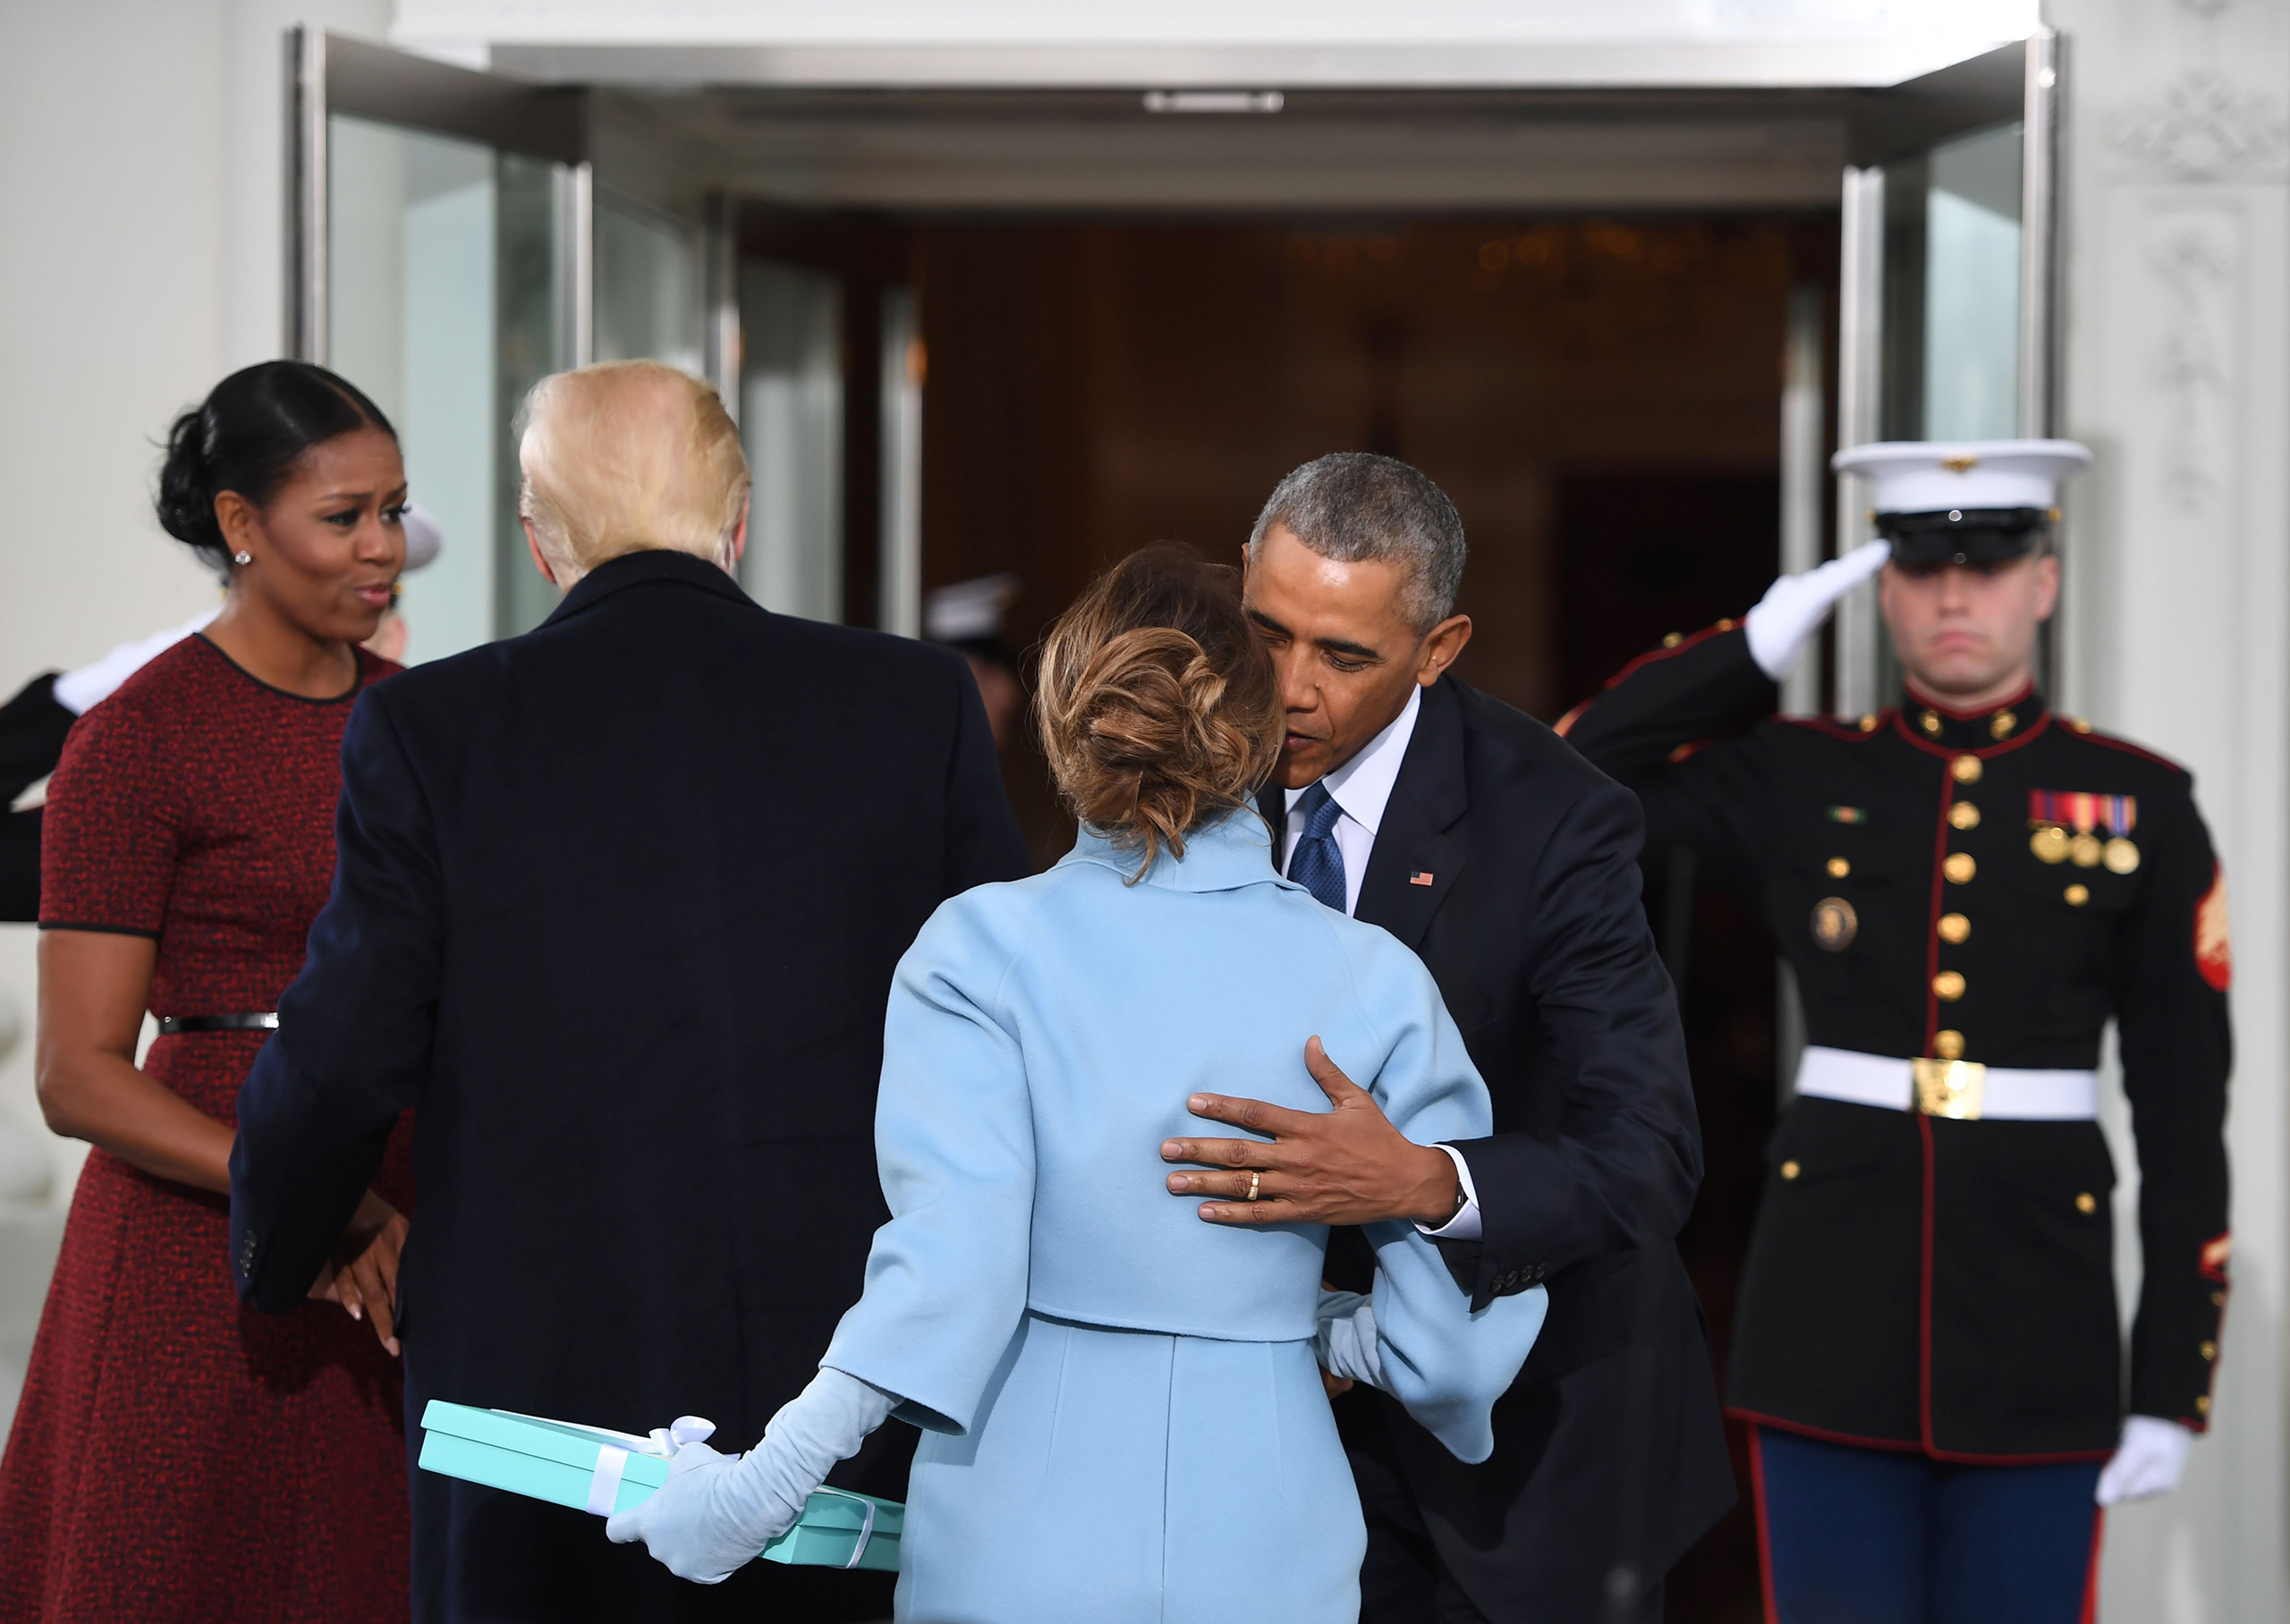 Melania Trump, bearing a gift from Tiffany & Co., greets President Obama before President Trump's swearing-in ceremony.